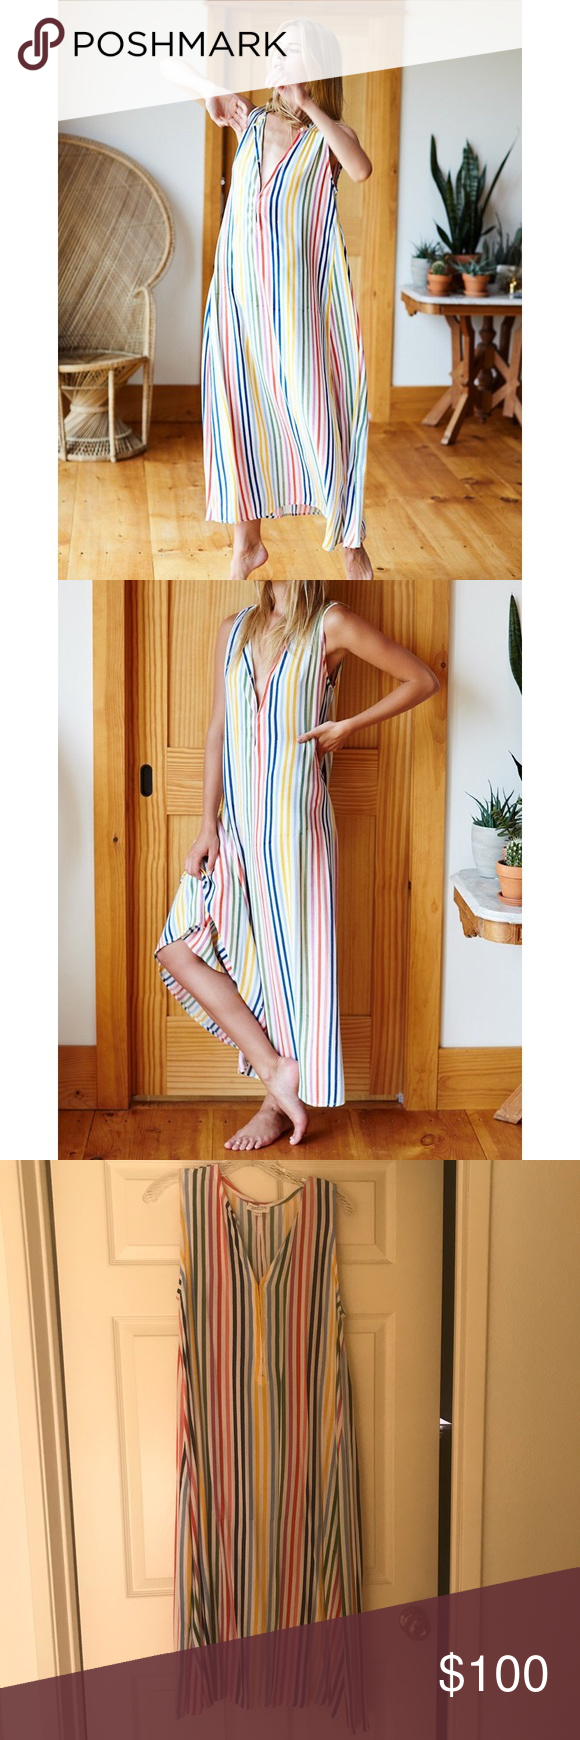 Emerson Fry Rainbow Stripe Caftan In good condition, only worn a few times. Sold out on the website! Emerson Fry Dresses #emersonfry